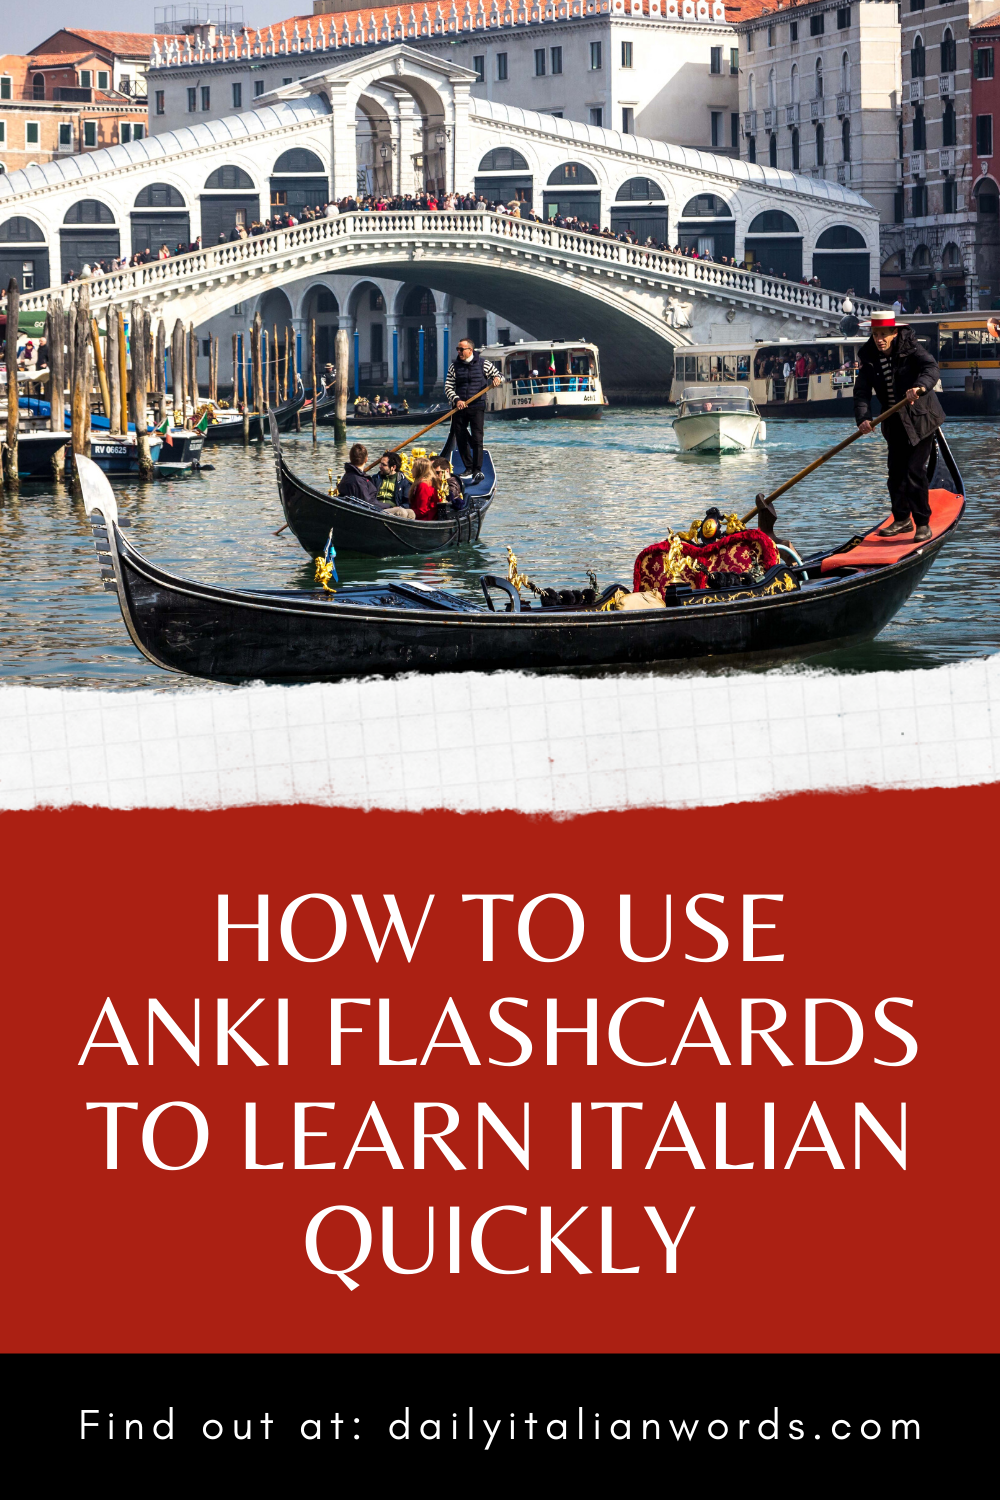 How to Use Anki Flashcards to Learn Italian Quickly in